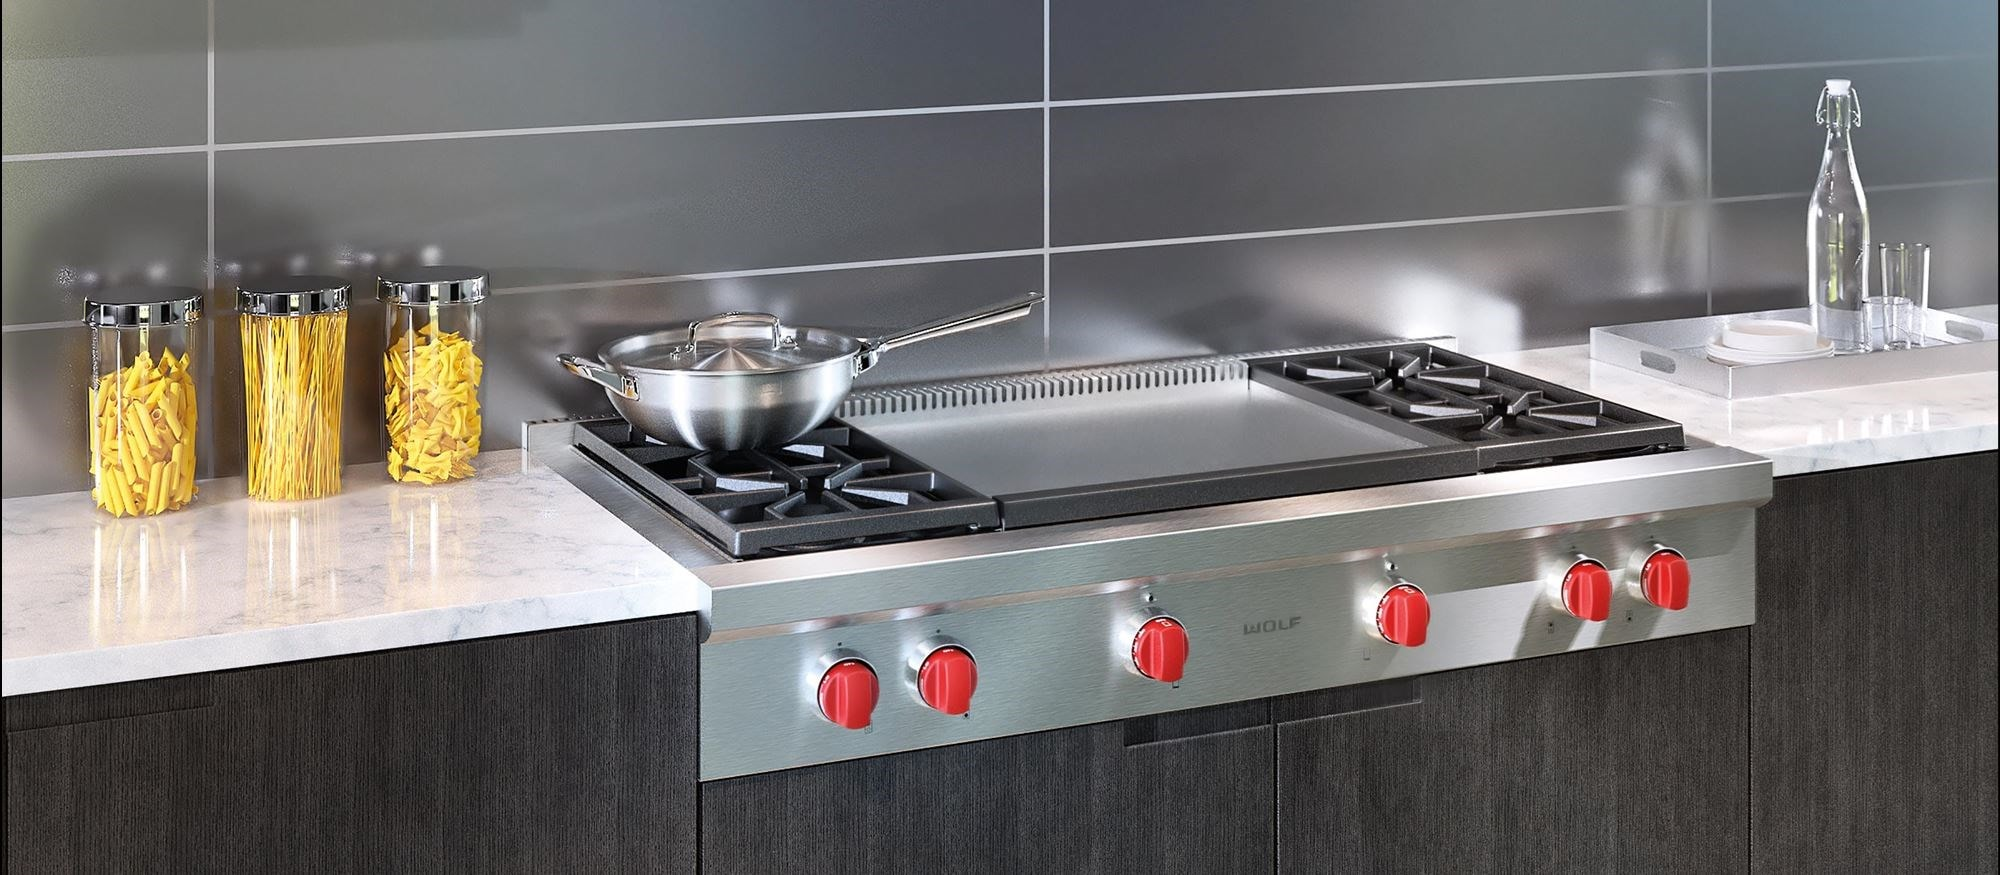 48 Sealed Burner Rangetop 4 Burners And Infrared Dual Griddle